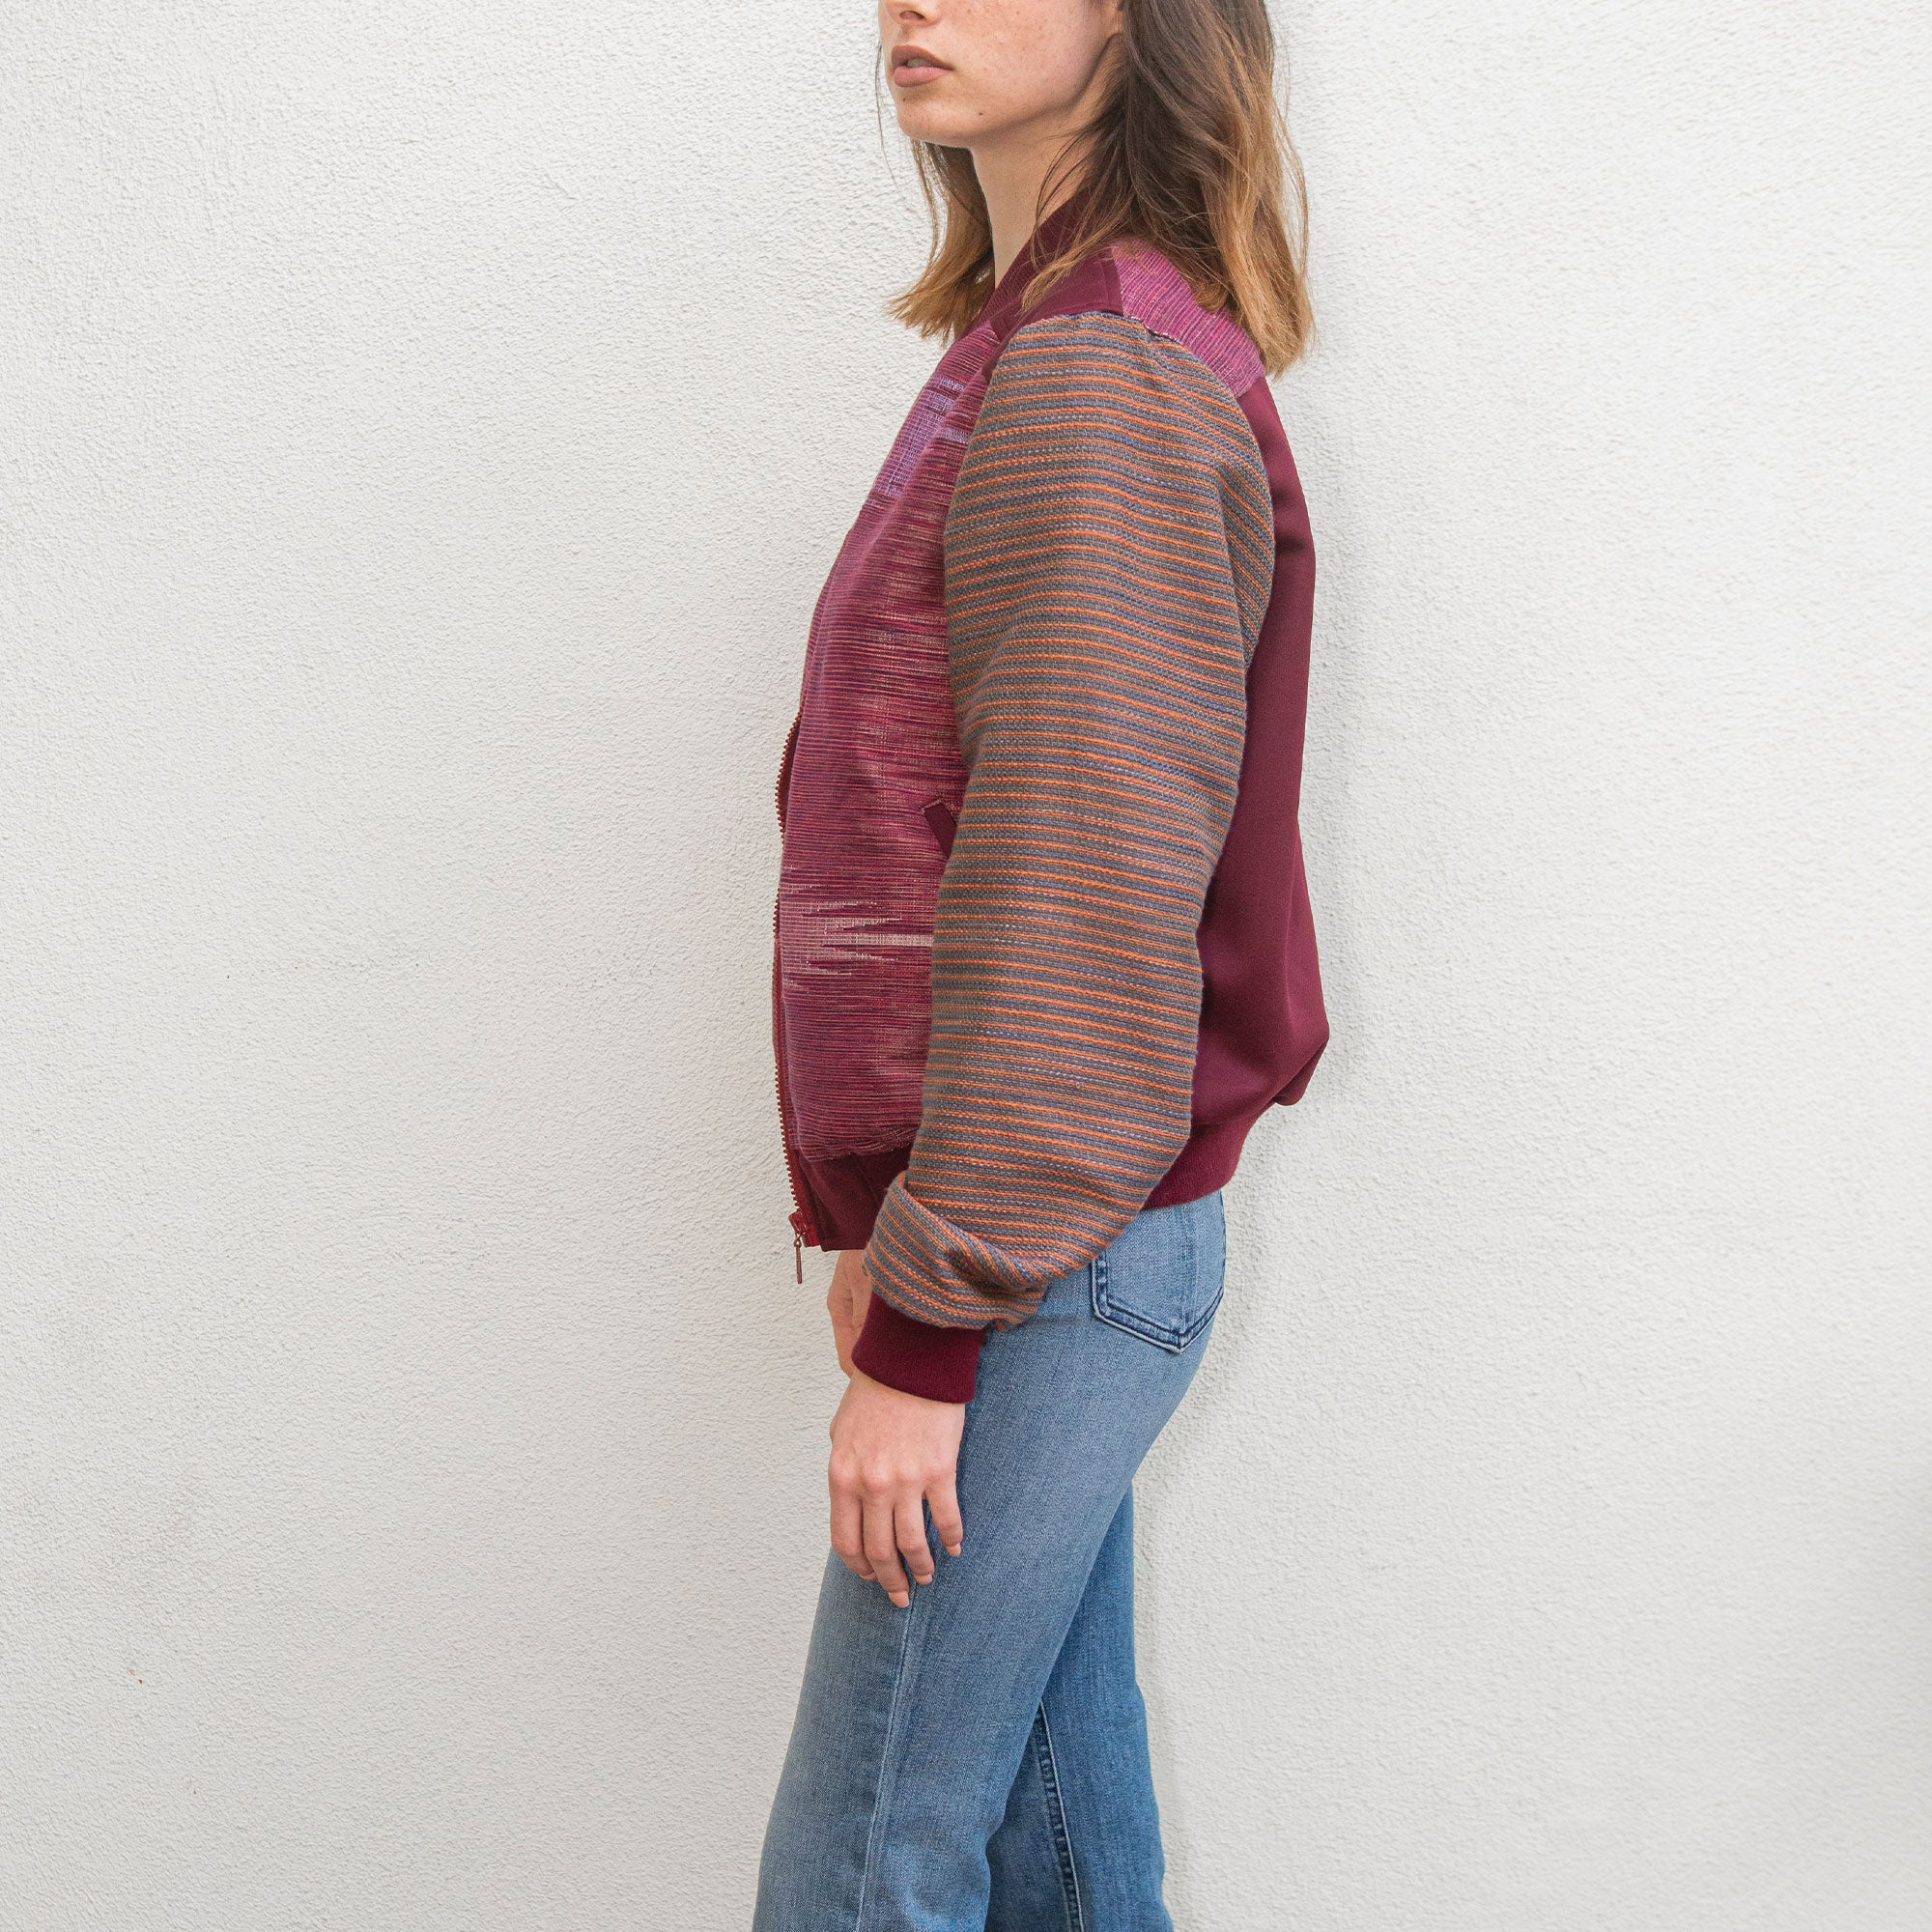 Victoria Marawi Jacket / Burgundy / Medium